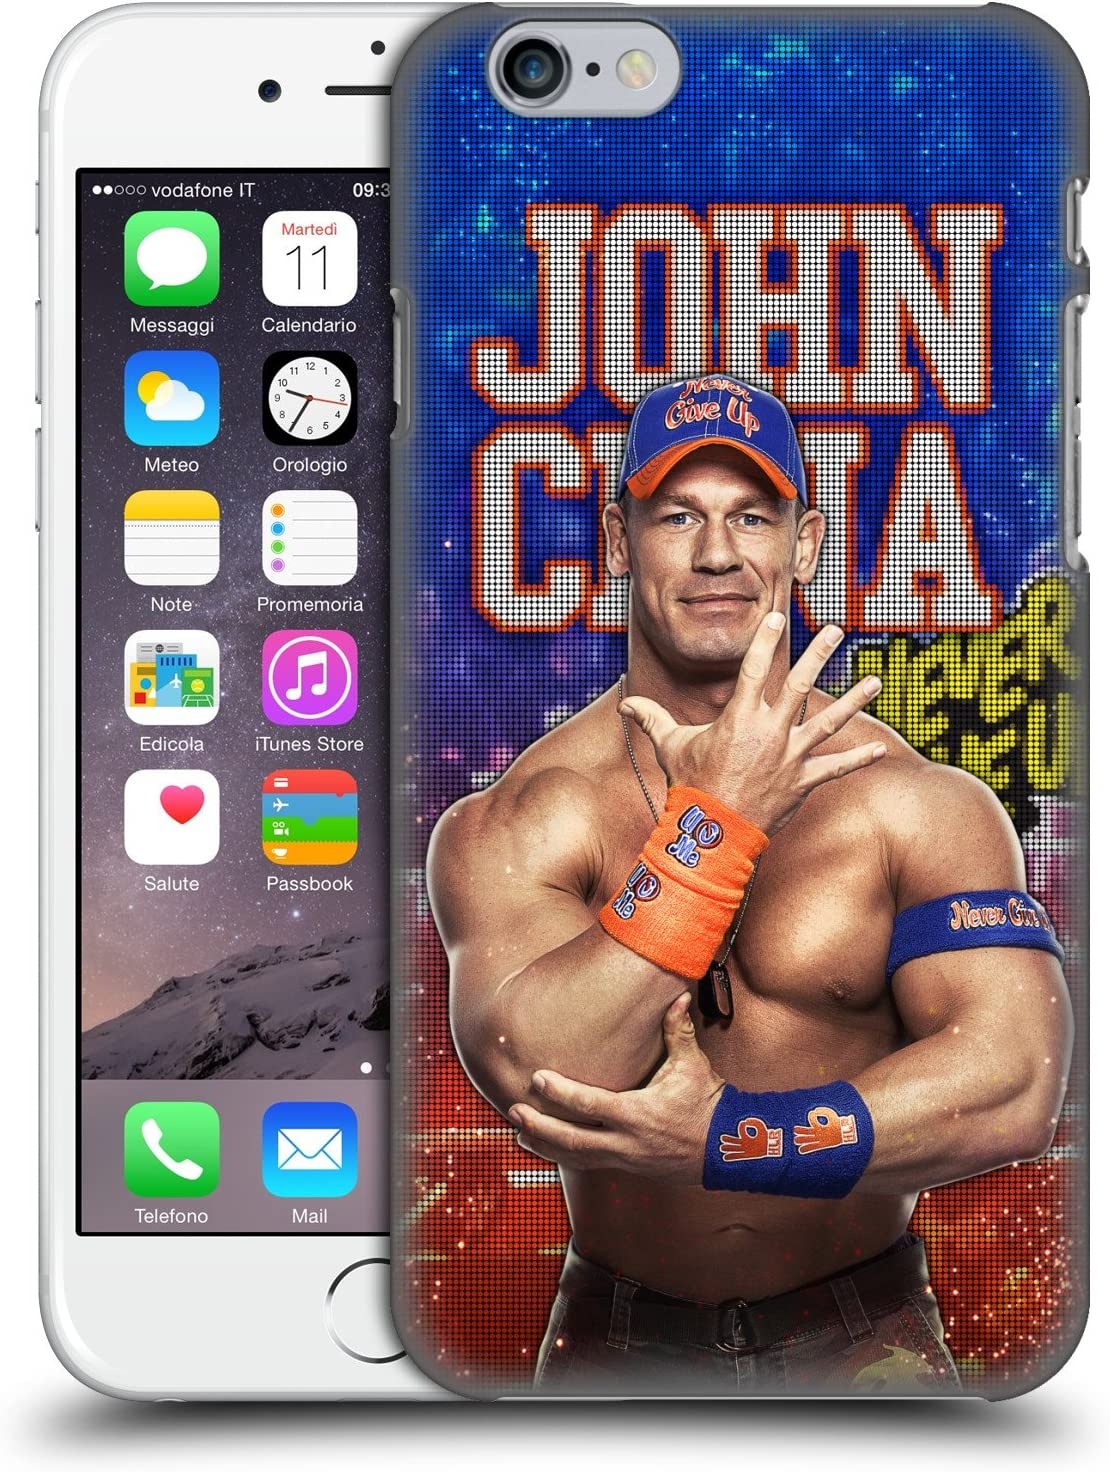 Head Case Designs Officially Licensed WWE LED Image 2017 John Cena Hard Back Case Compatible with Apple iPhone 6 / iPhone 6s